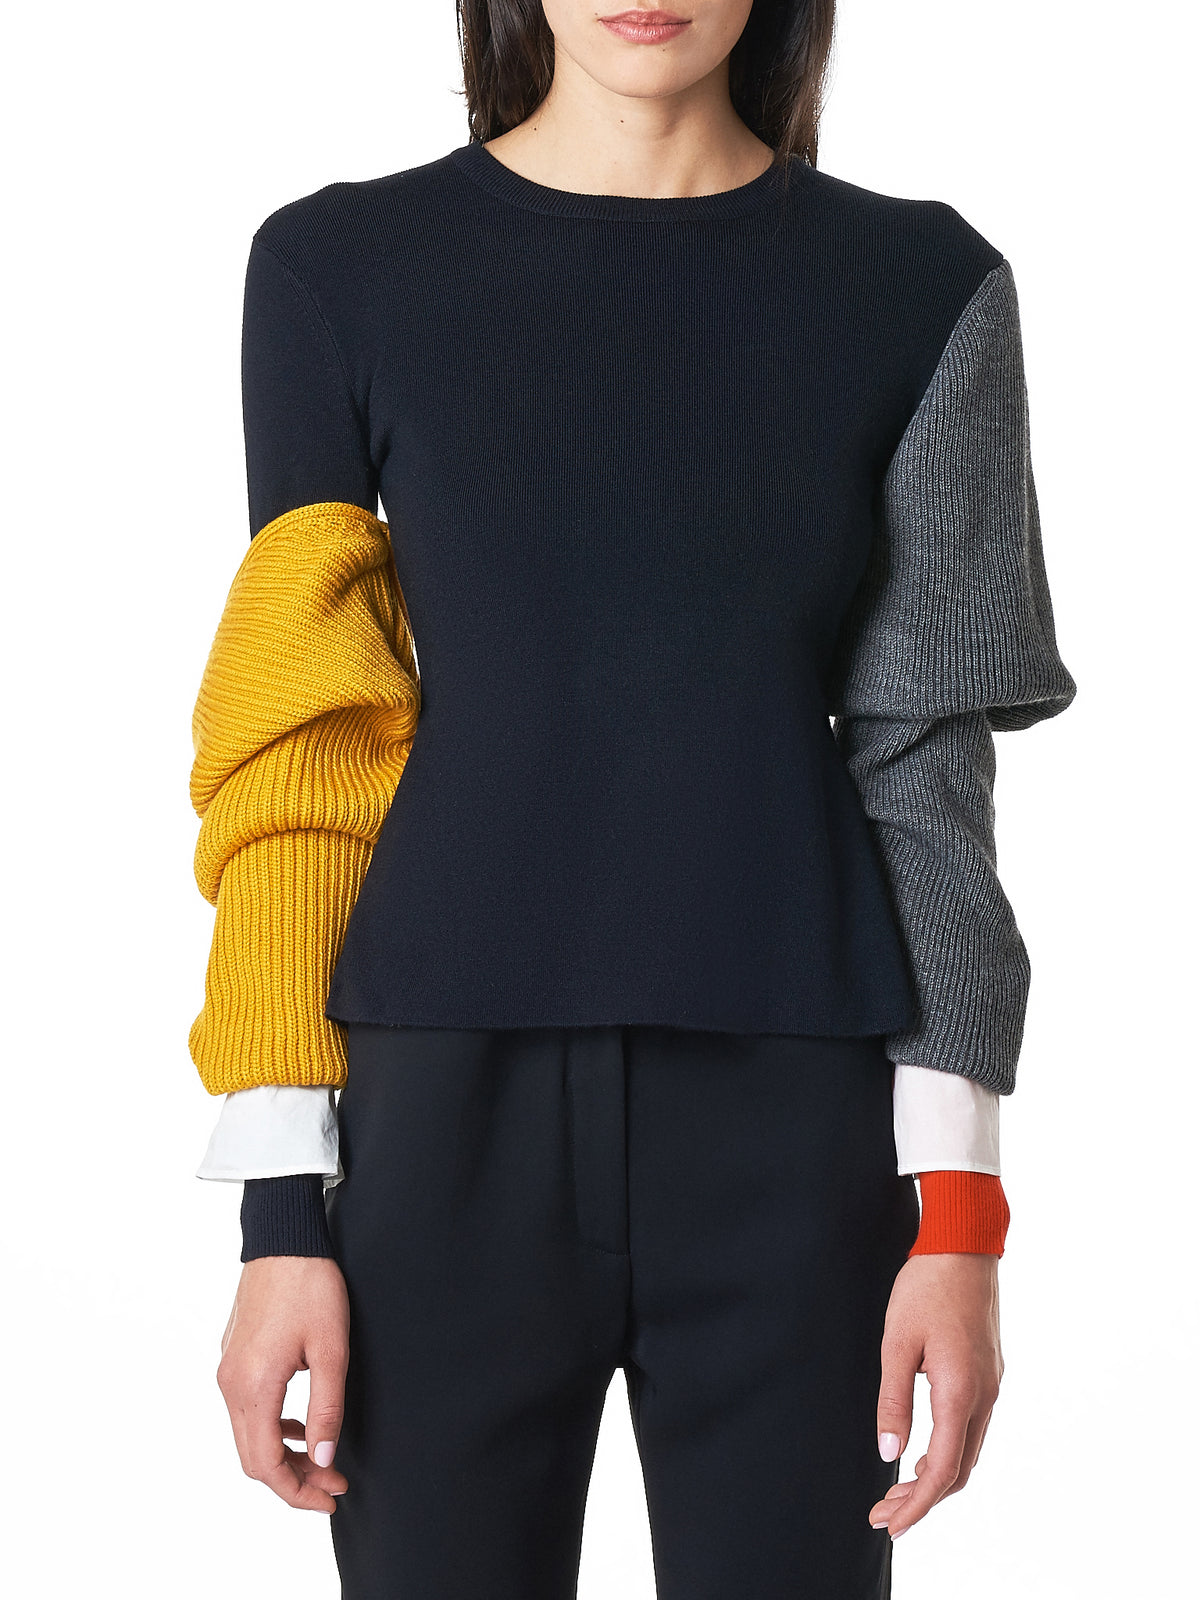 Layered Sleeve Knit Pullover (300BA370-2260-DARK-NAVY)